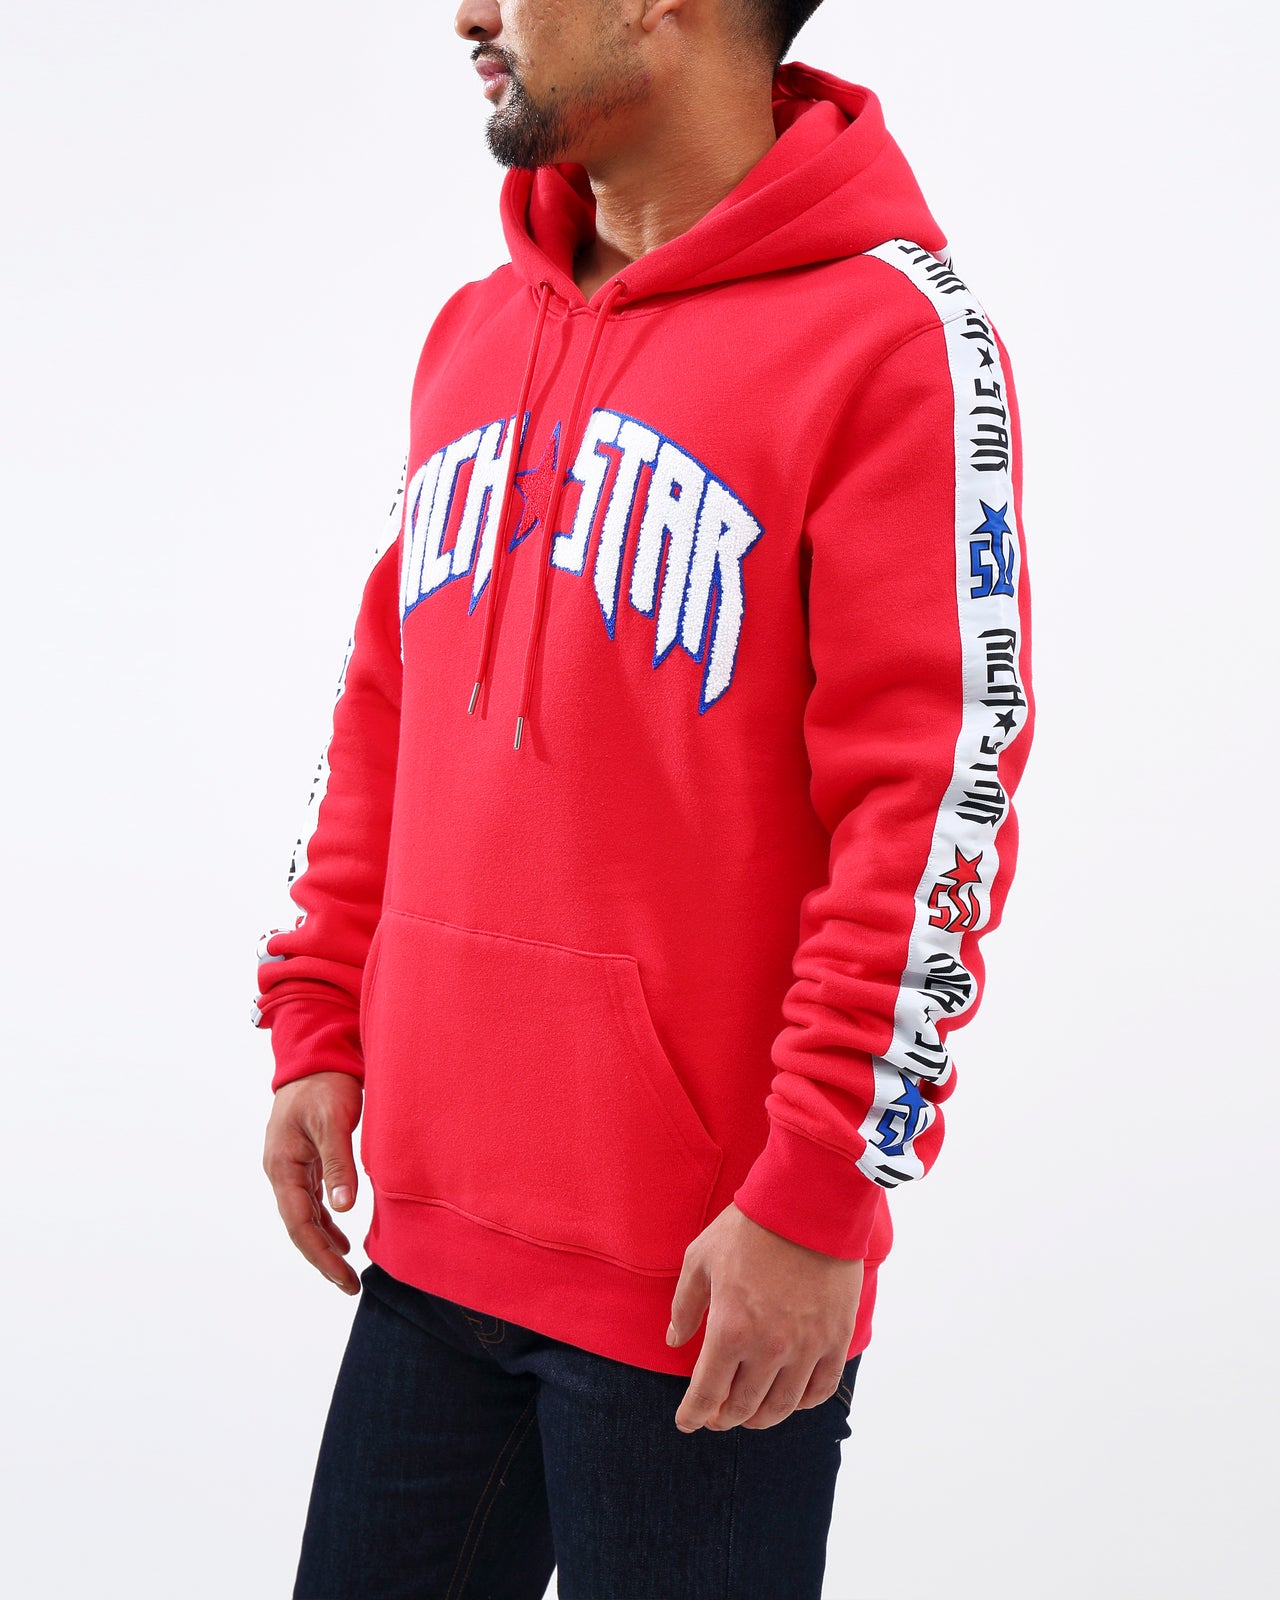 RS FULL TAPE PO HOODY - Color: RED